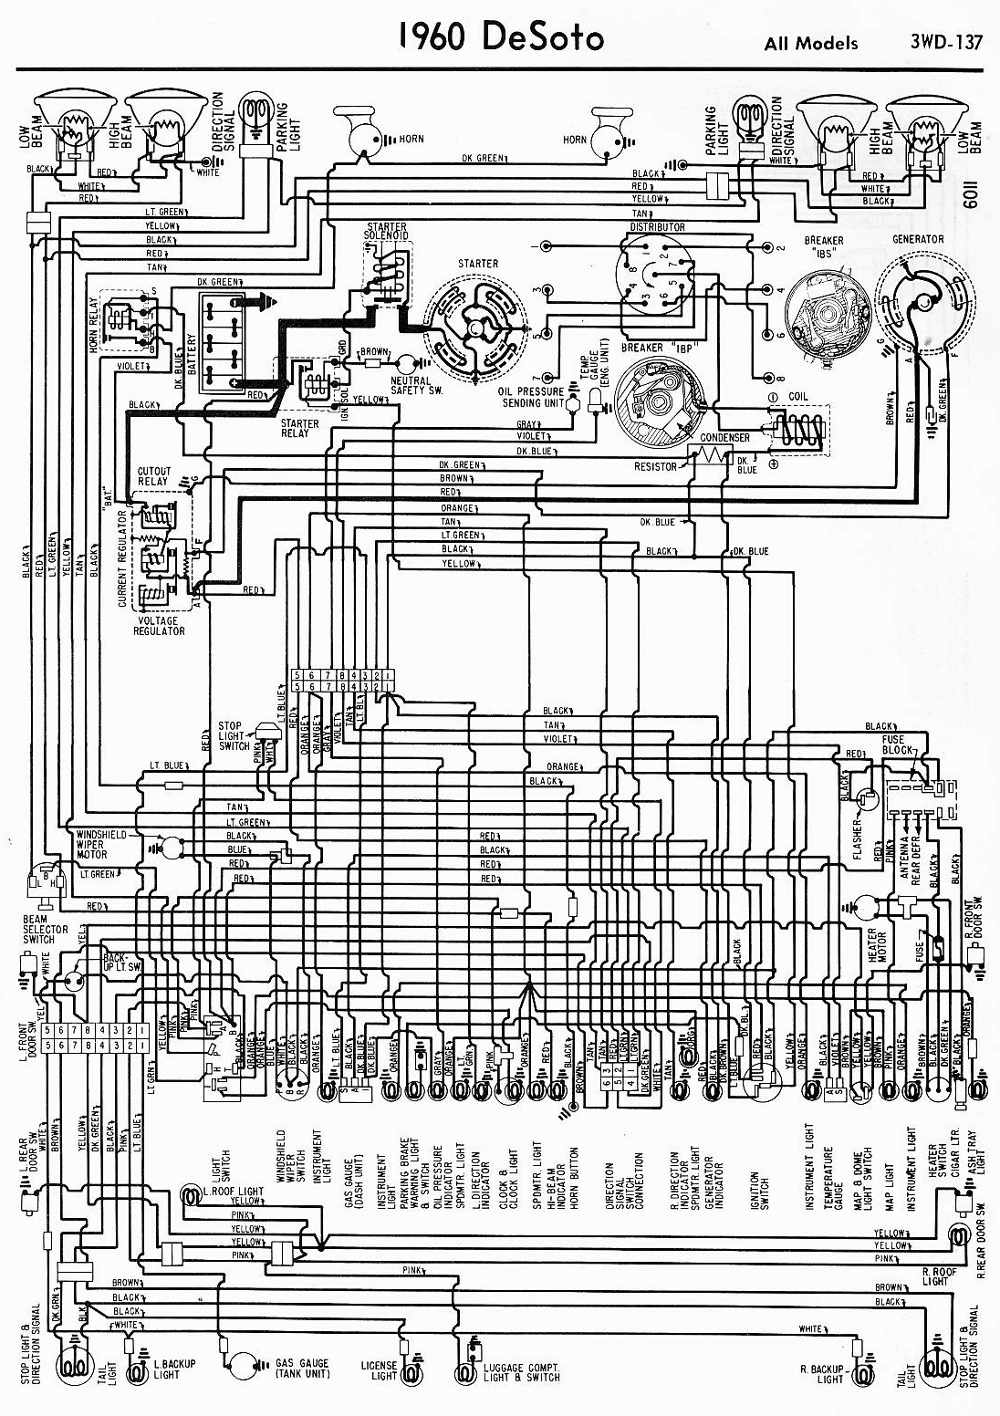 1960 desoto wiring diagram